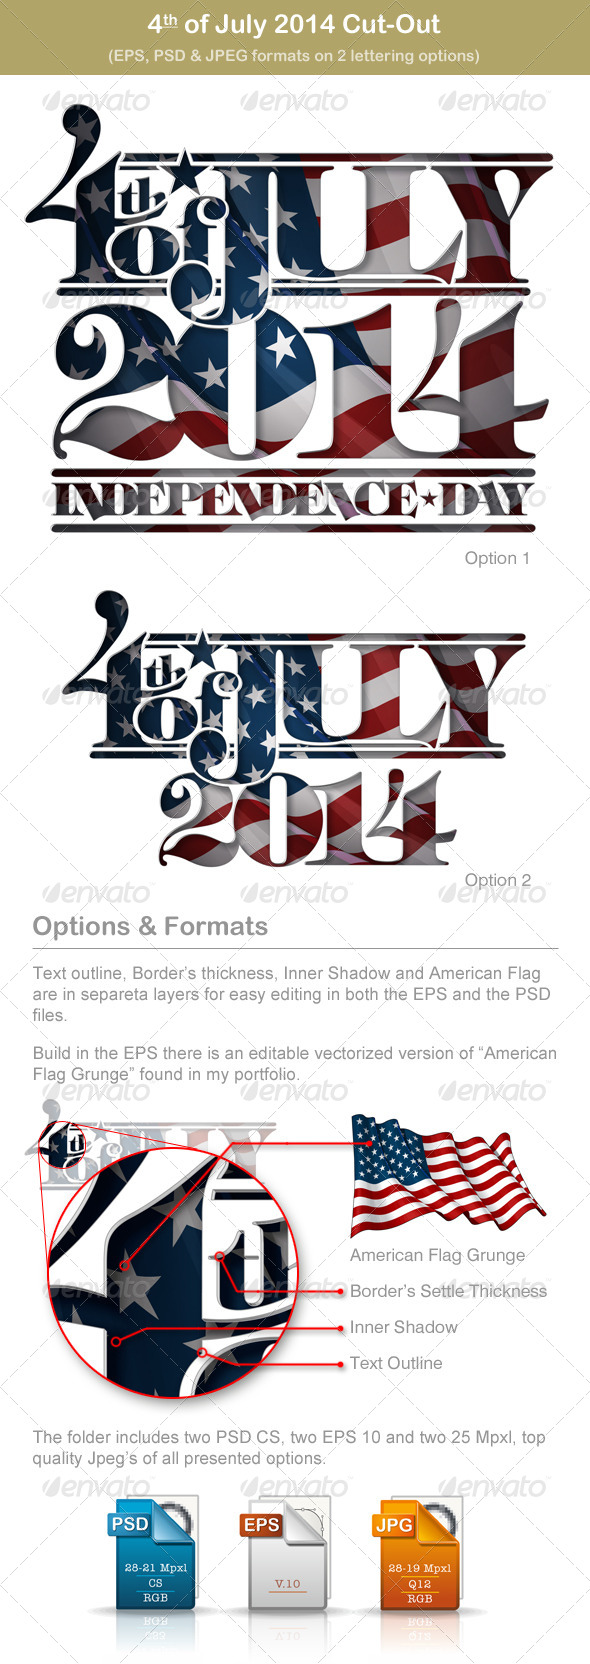 GraphicRiver 4th of July 2014 Independence Day Cut-Out 7357924